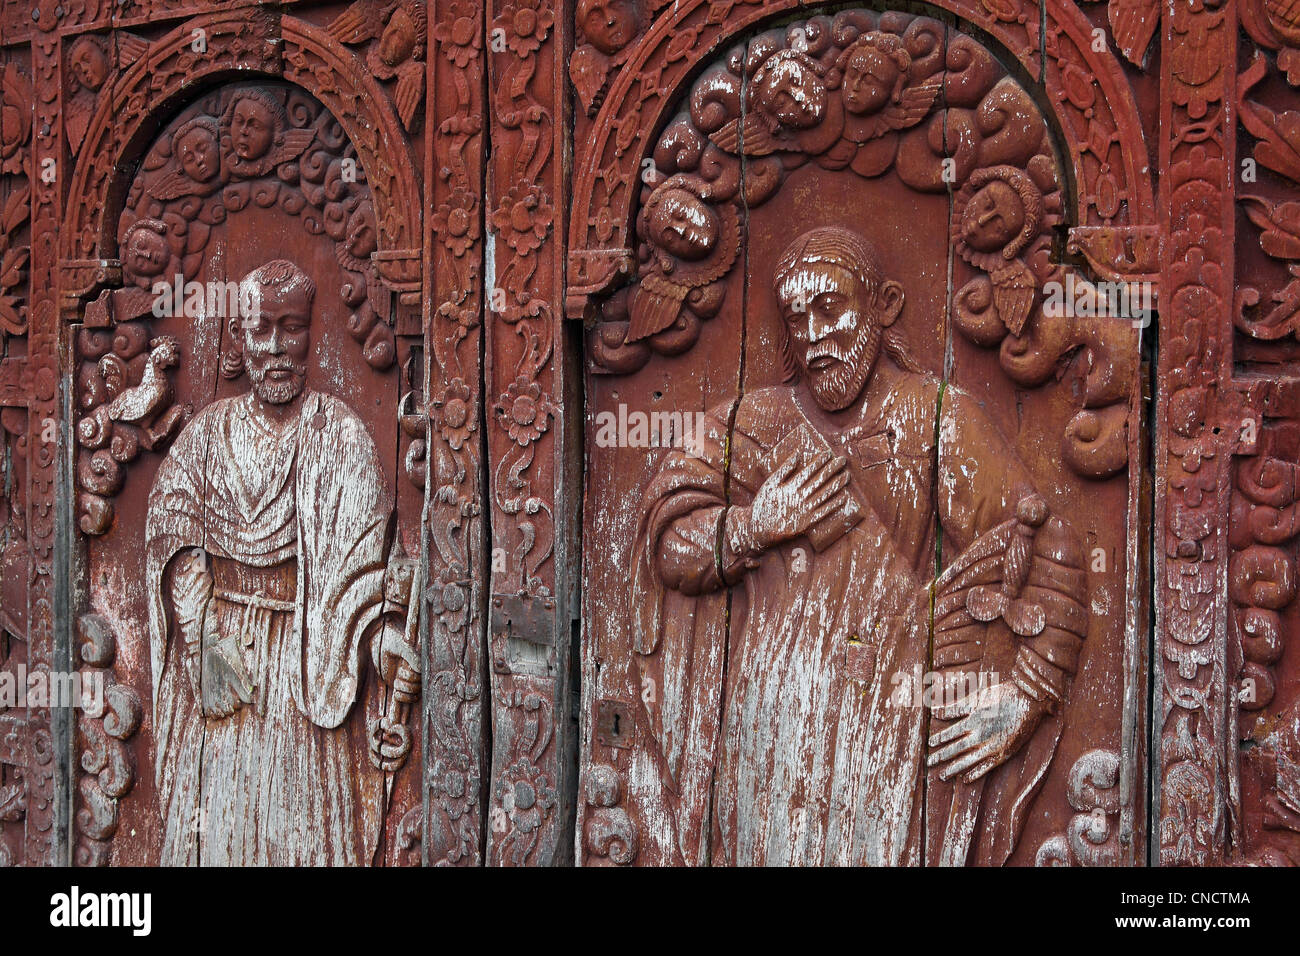 Four hundred year old wooden doors of the Immaculate Conception Church.  Guiuan, Samar, - Wooden Church Doors Stock Photos & Wooden Church Doors Stock Images